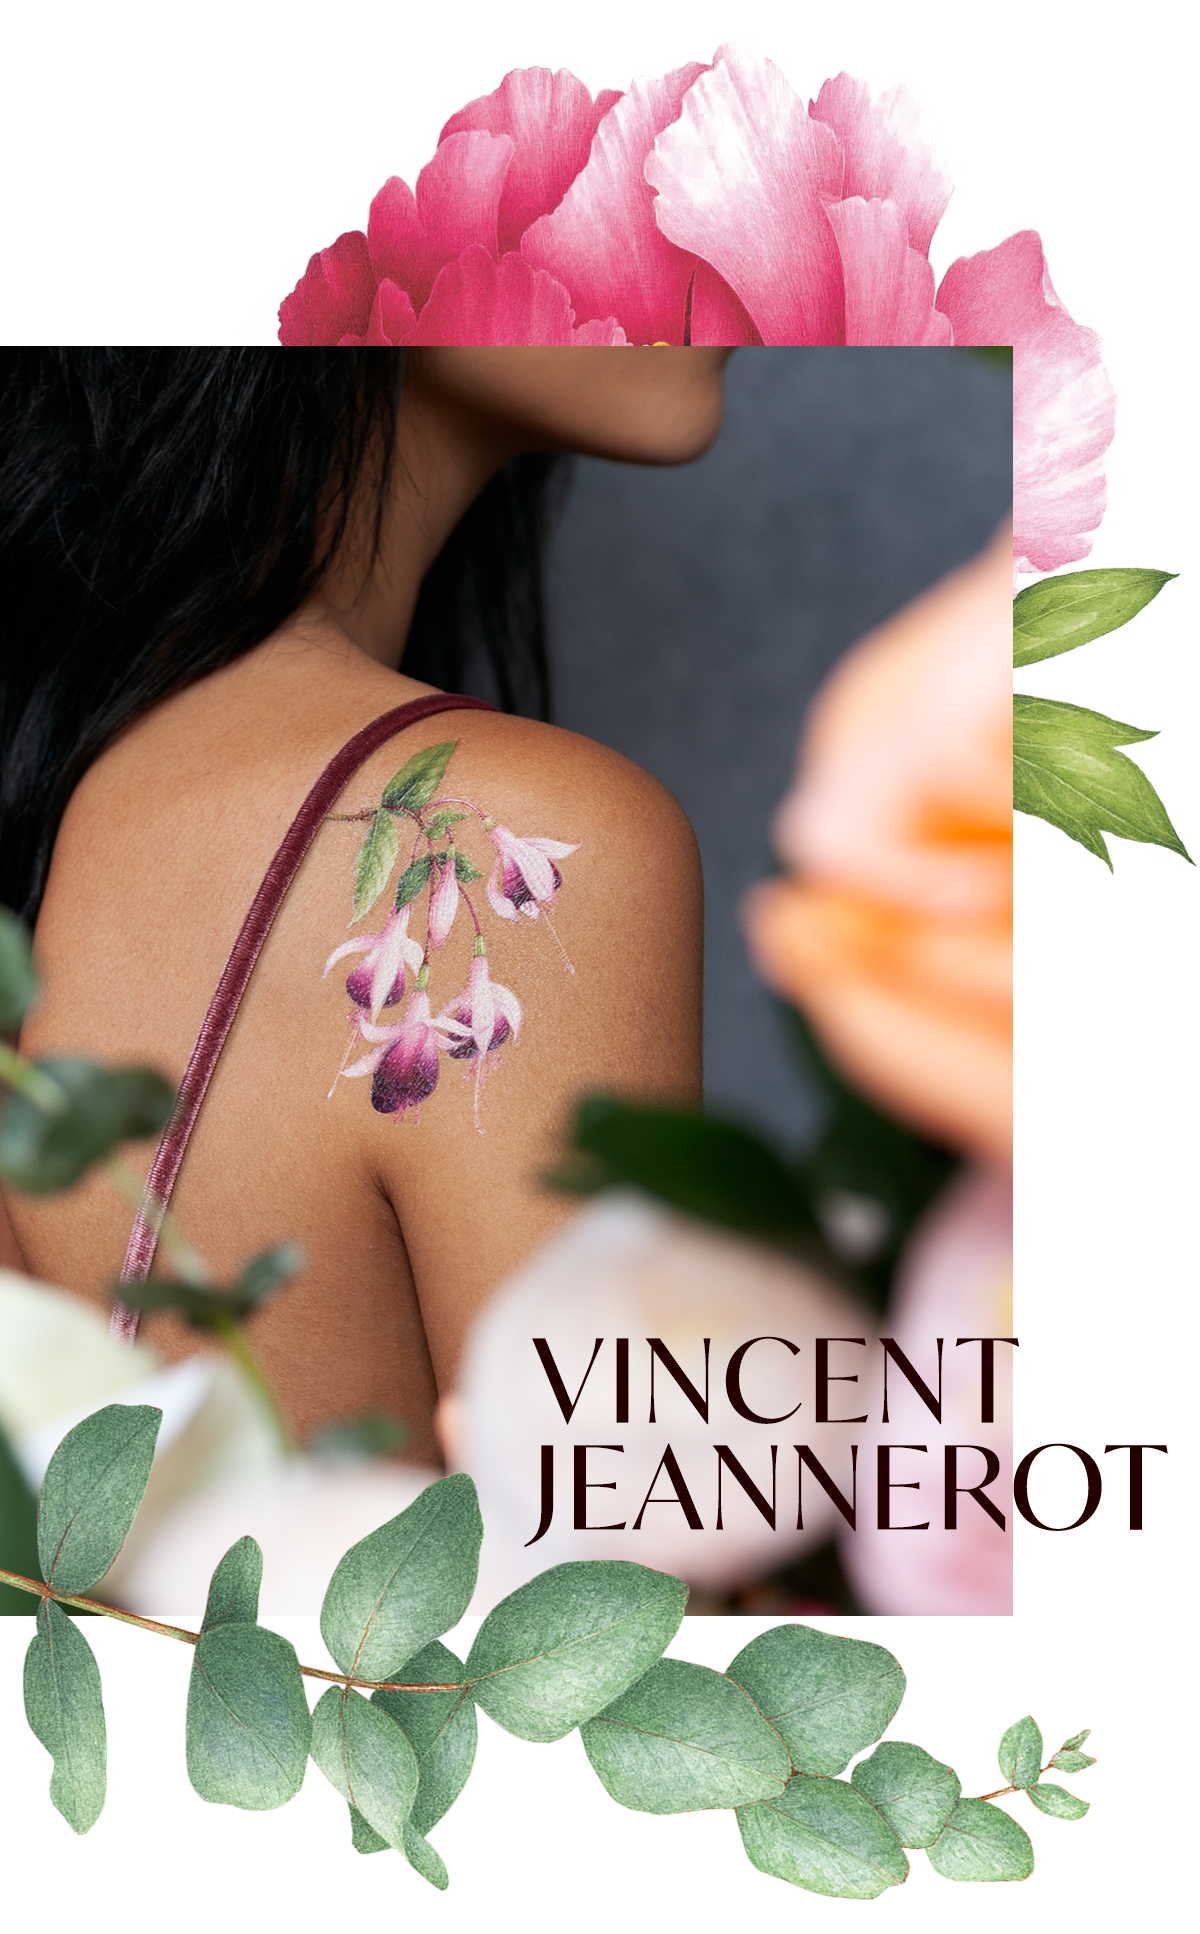 Vincent Jeannerot